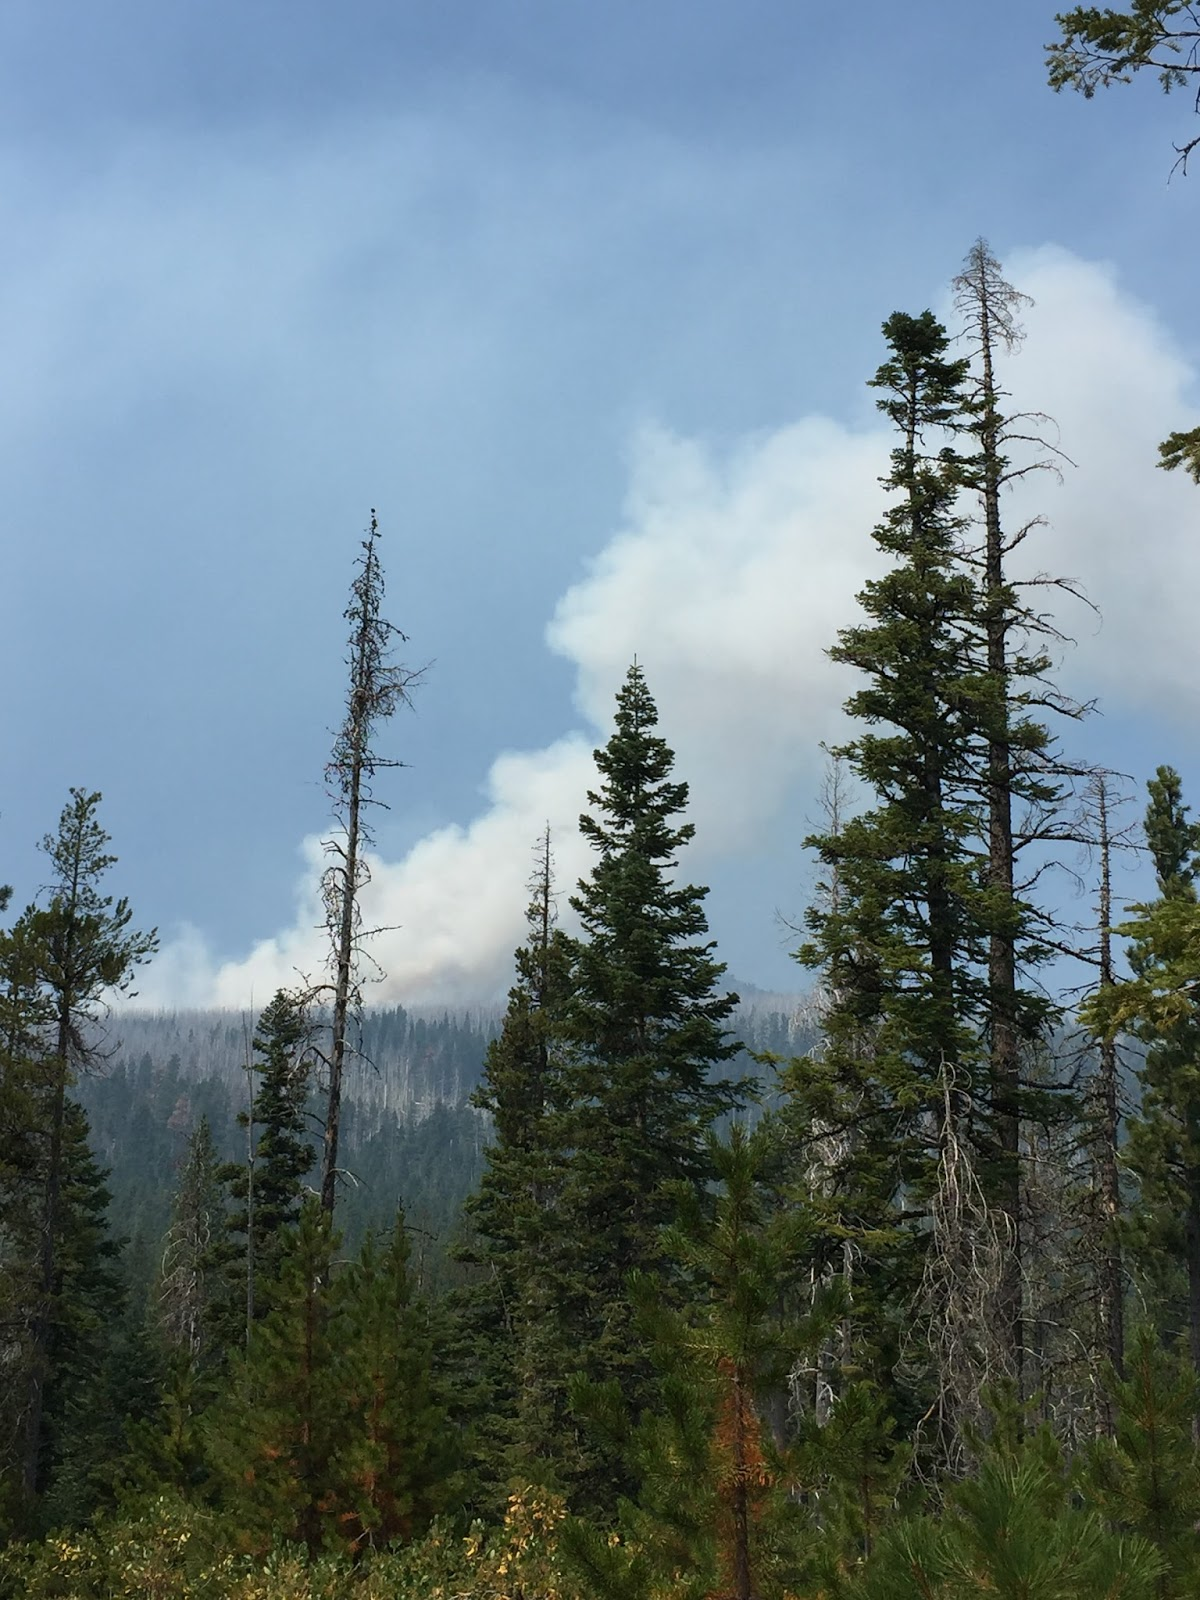 Smoke from the Milli Fire. (Deschutes National Forest)